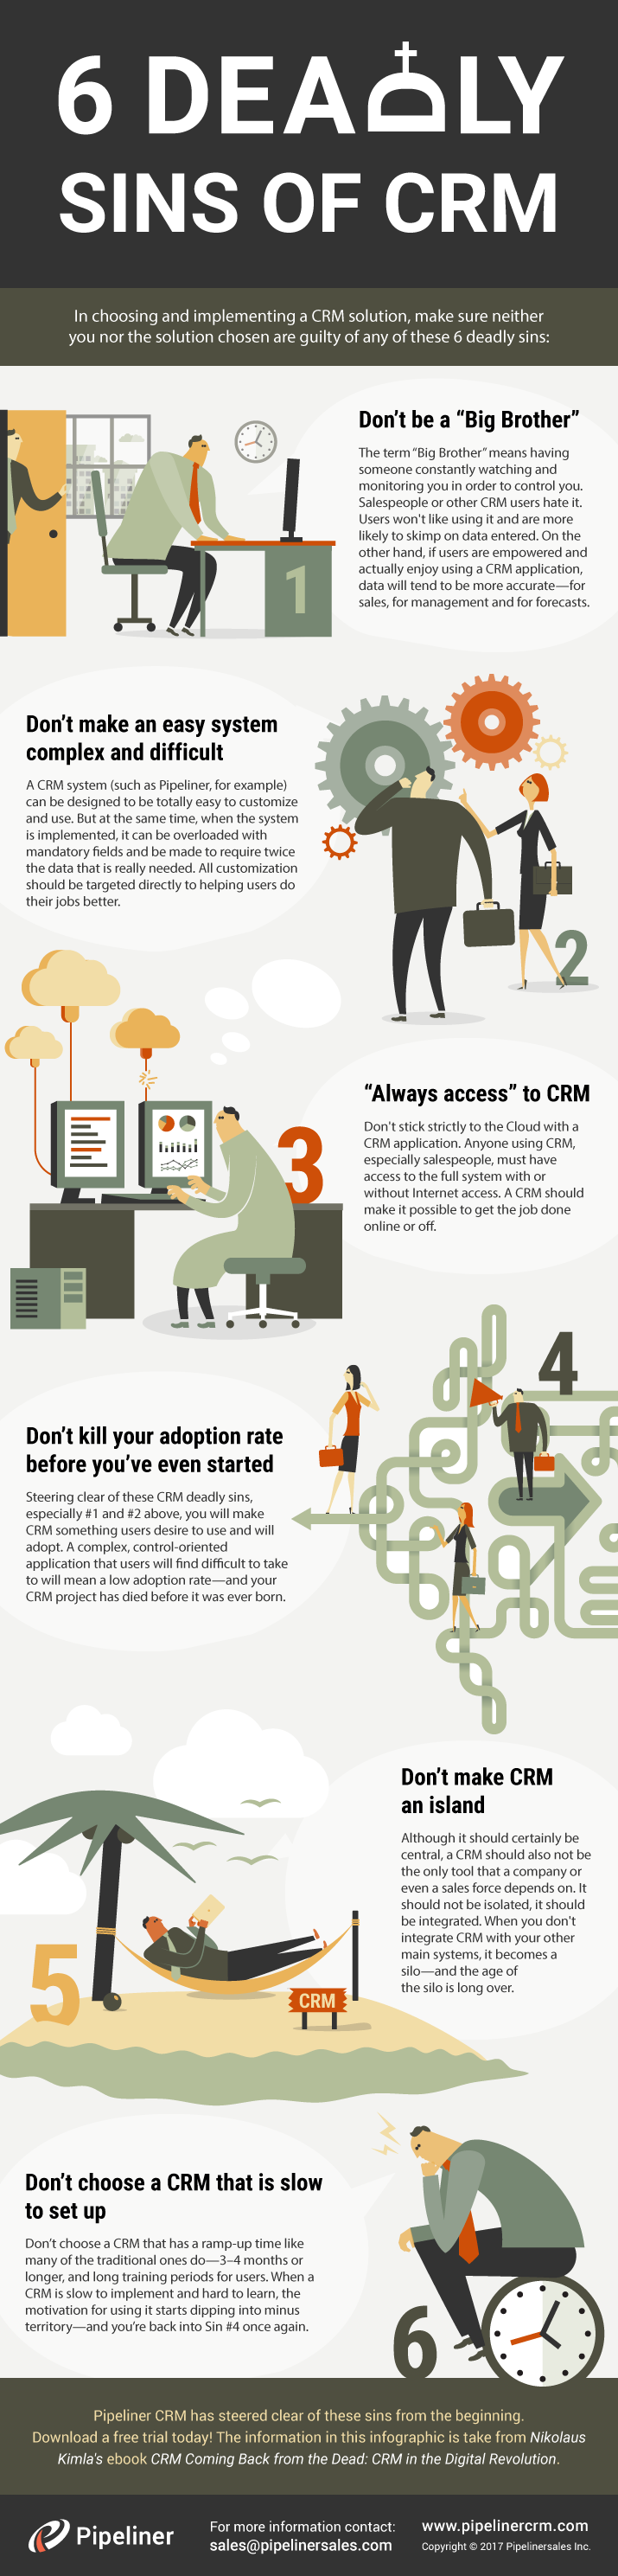 6 Deadly Sins of CRM